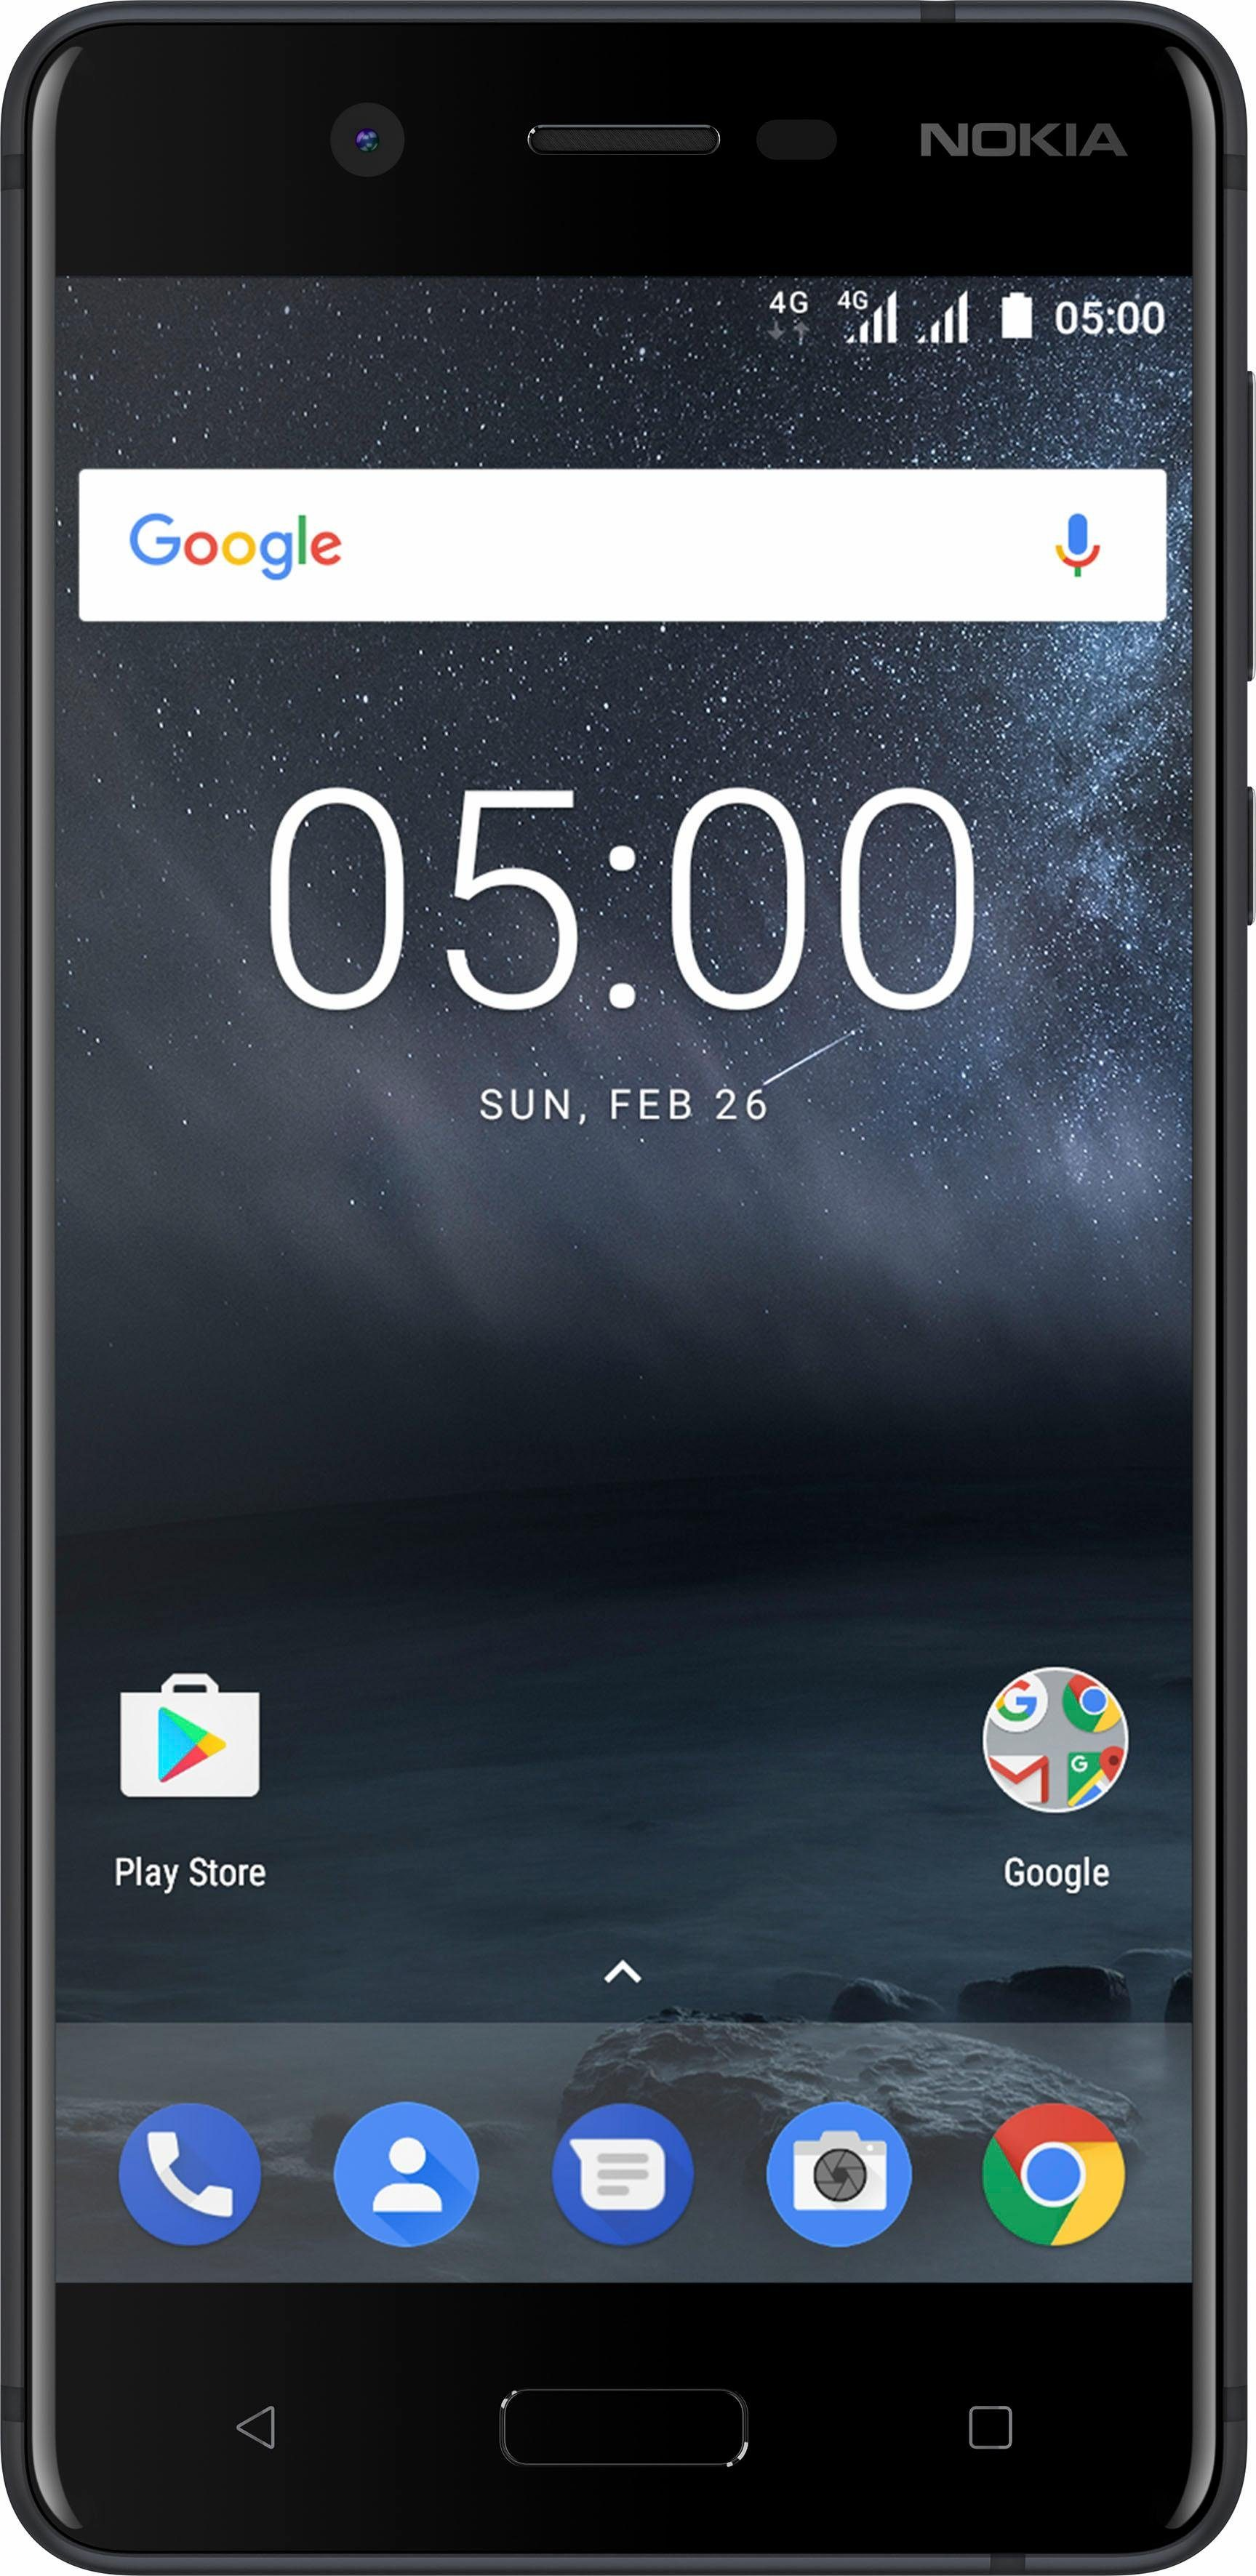 Nokia 5 Dual SIM Smartphone, 13,2 cm (5,2 Zoll) Display, LTE (4G), Android 7.1 Nougat